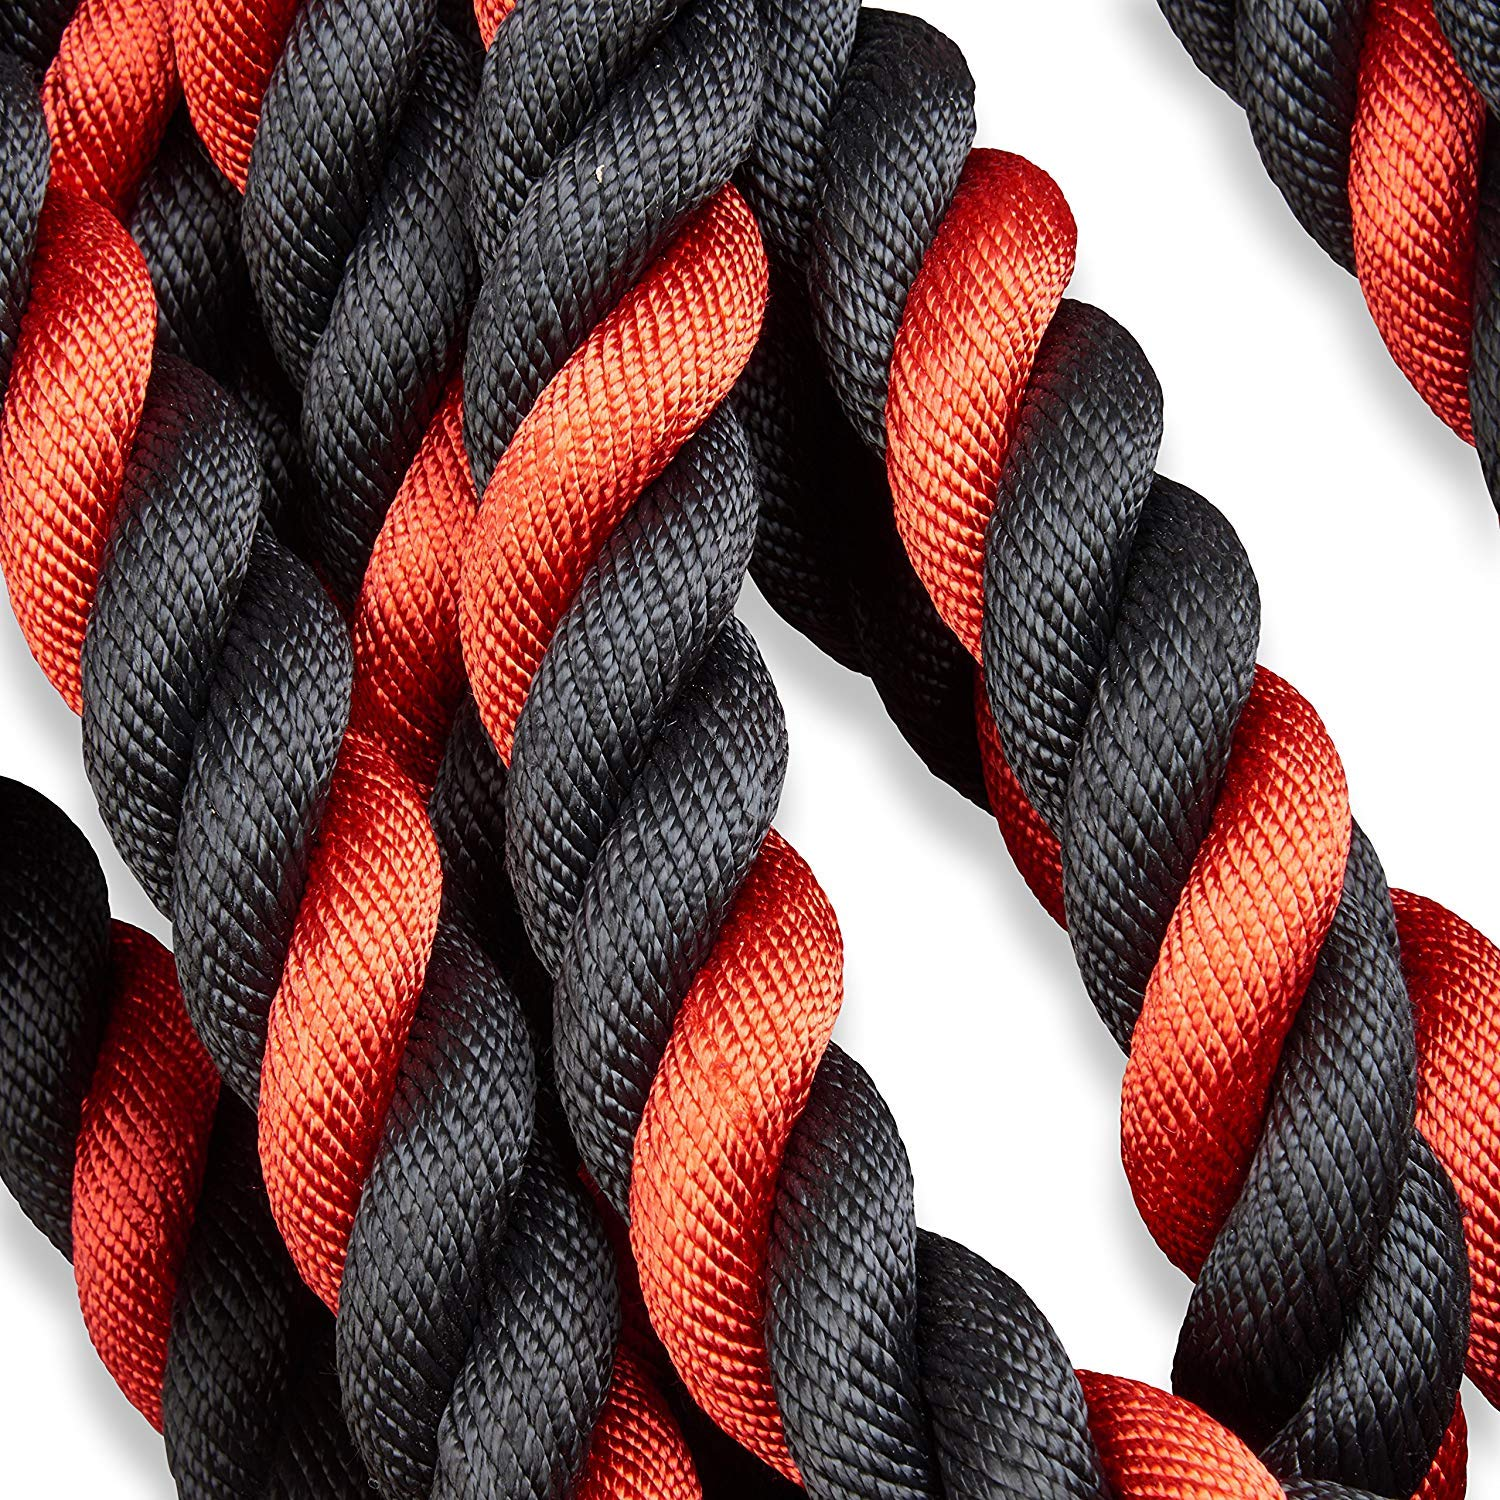 Battle Ropes with Anchor Kit and Nylon Protector Included - Fitness Undulation Rope Exercise - Cross Strength Training - Circuits Workout (1.5'' x 30 ft) by Iron Bull Strength (Image #4)